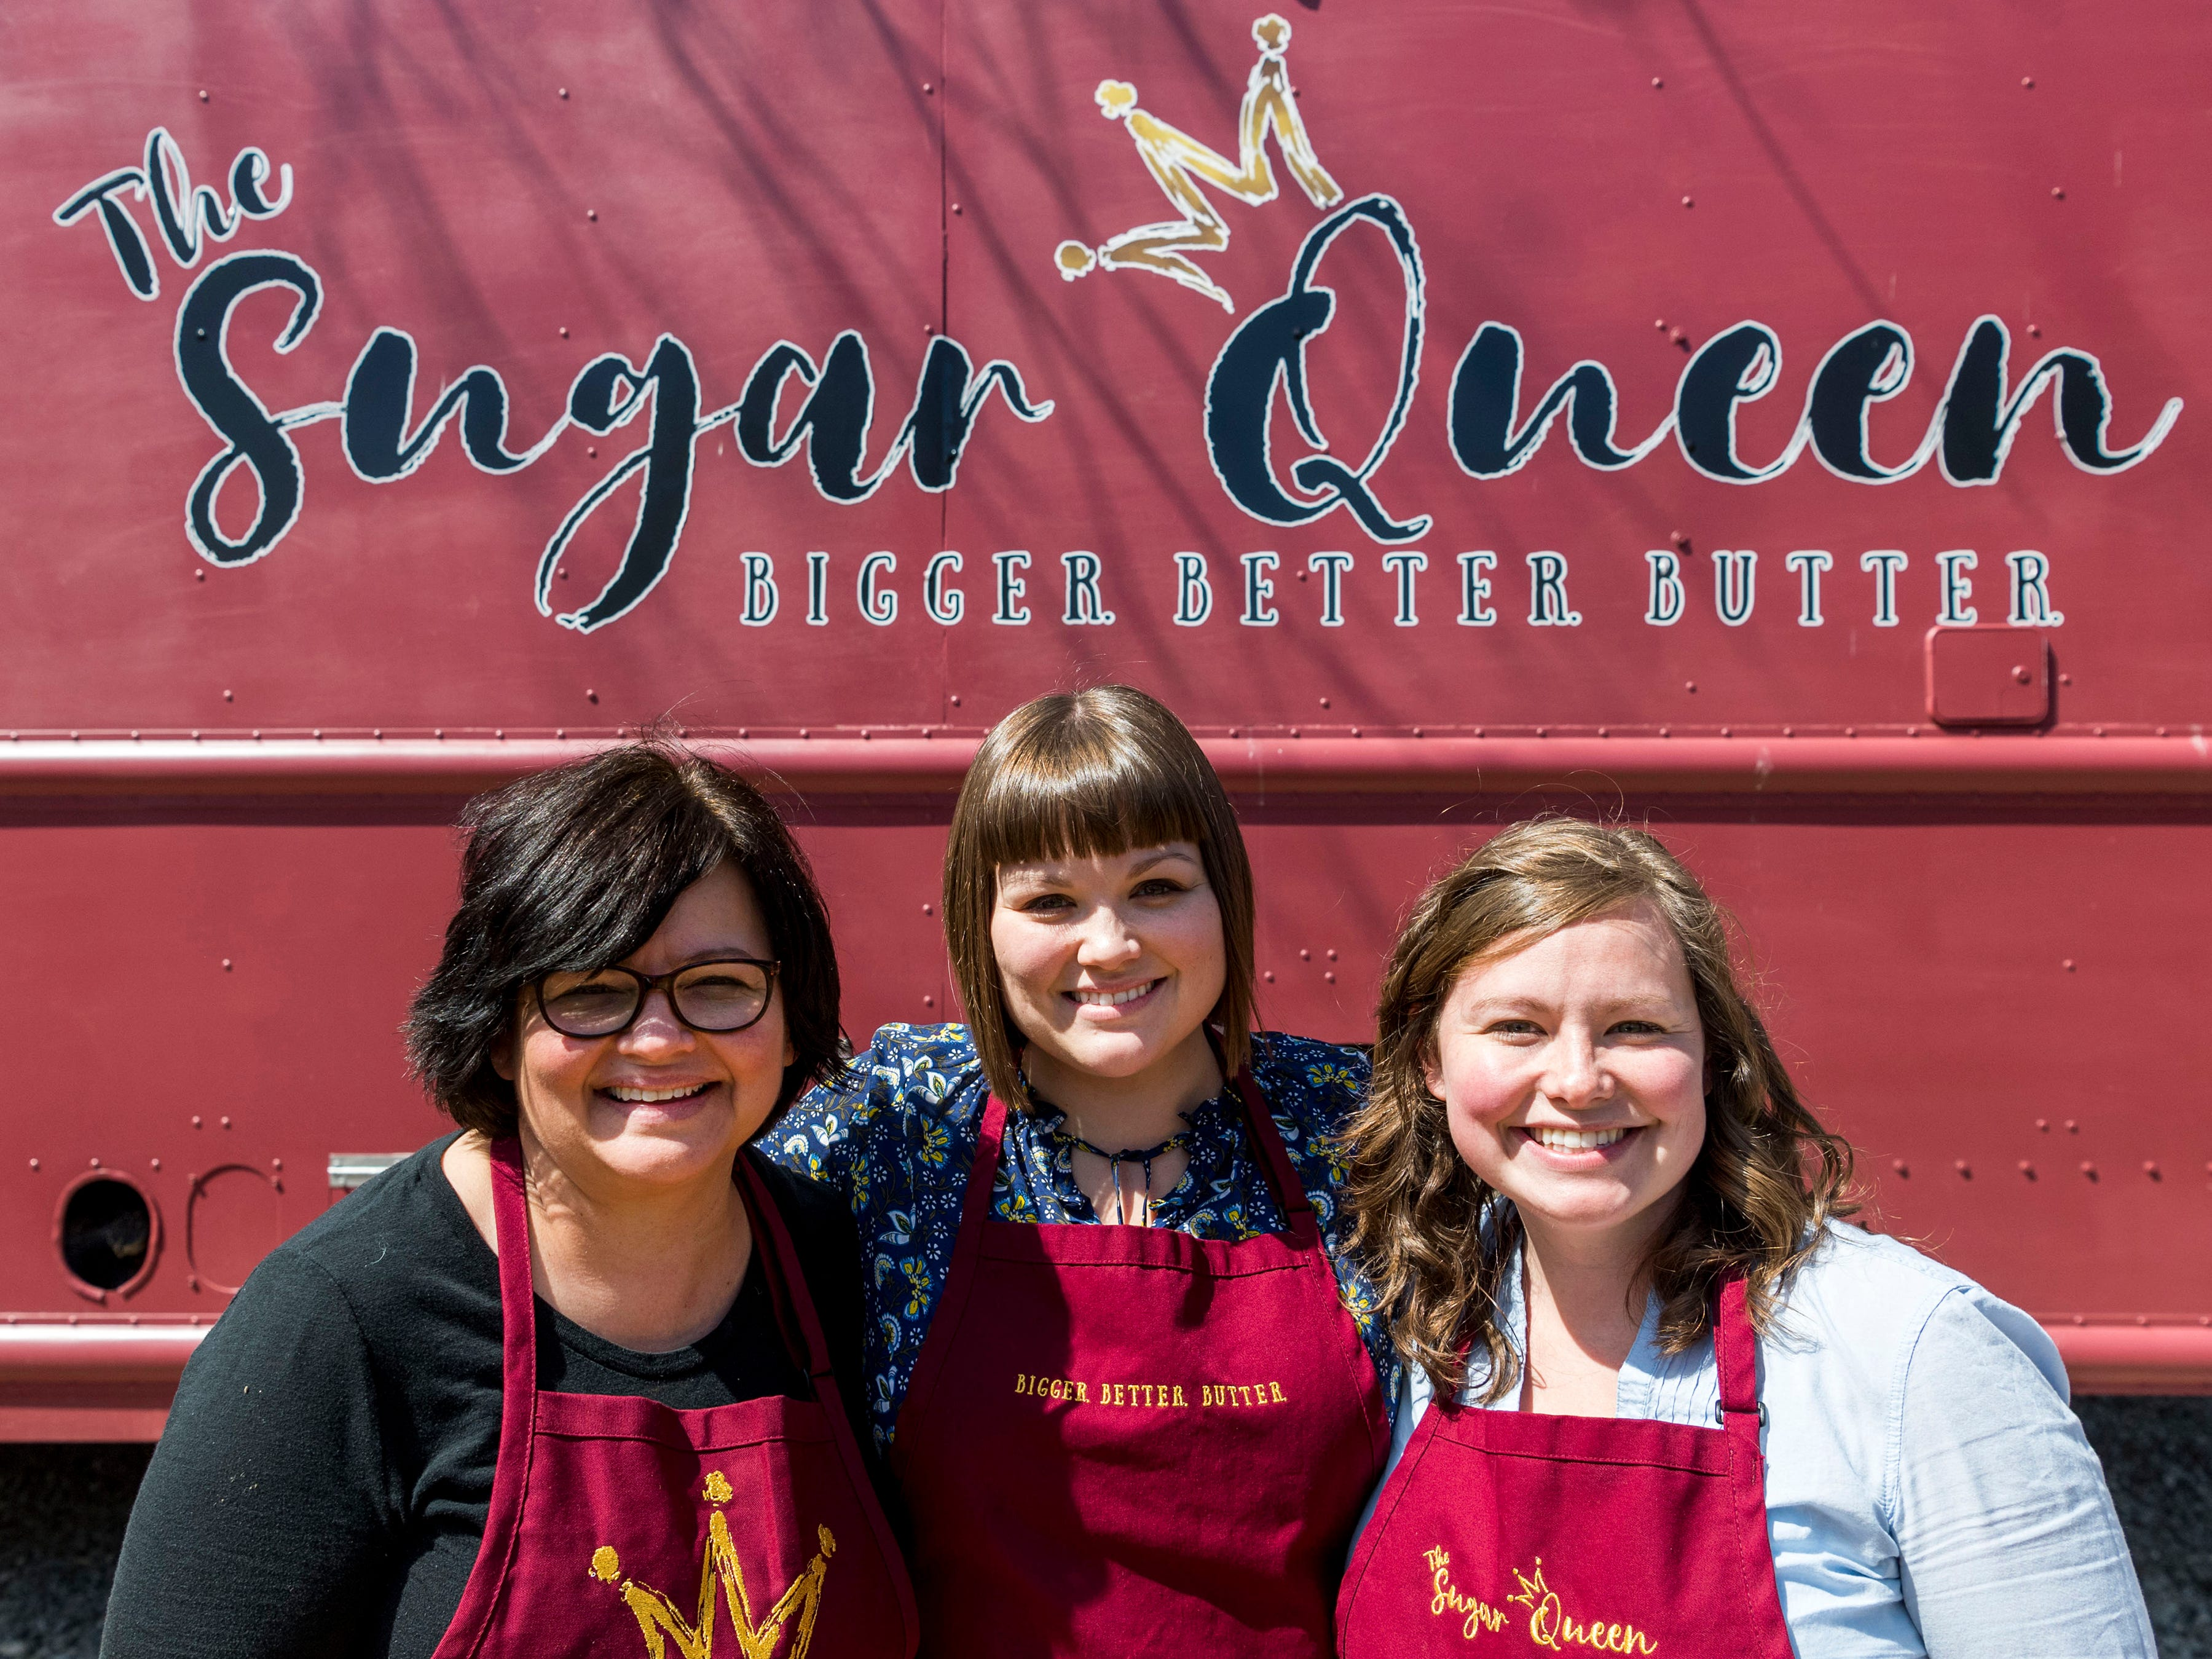 From left, Suvilla Gingerich, Lauri Gingerich and Staci Meyer with their food truck, The Sugar Queen, on Saturday, March 30, 2019.